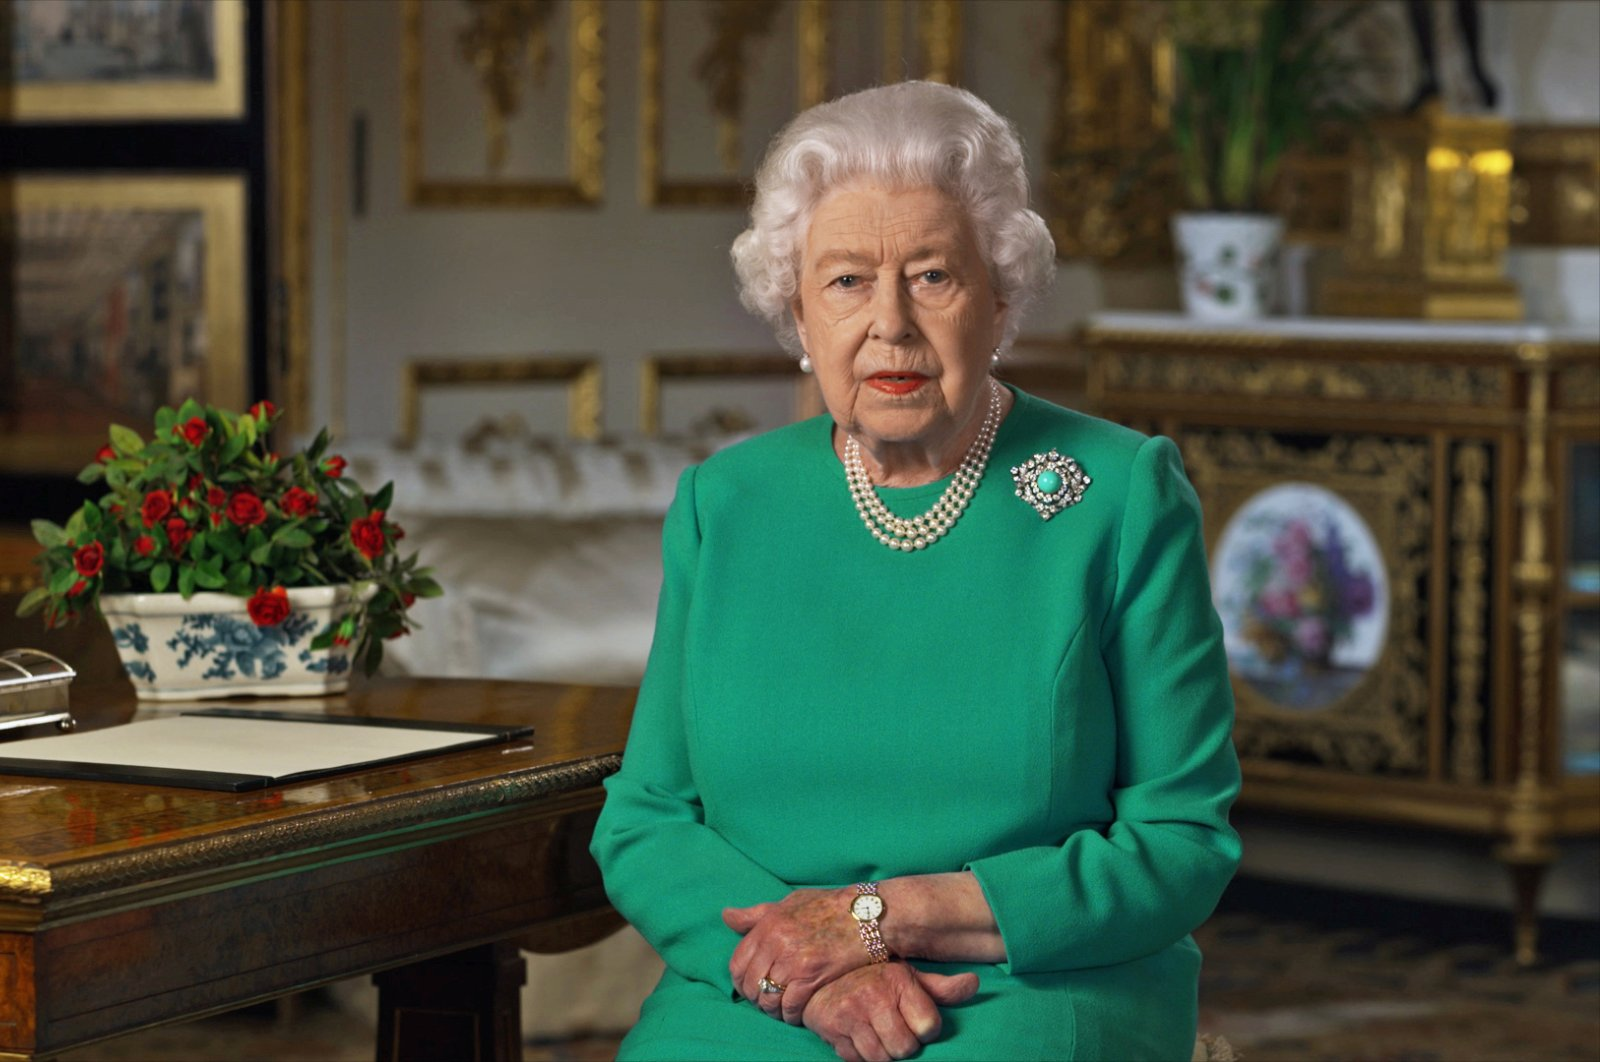 Buckingham Palace handout image of Britain's Queen Elizabeth during her address to the nation and the Commonwealth in relation to the coronavirus epidemic (COVID-19), recorded at Windsor Castle, Britain, April 5, 2020. (Reuters Photo)